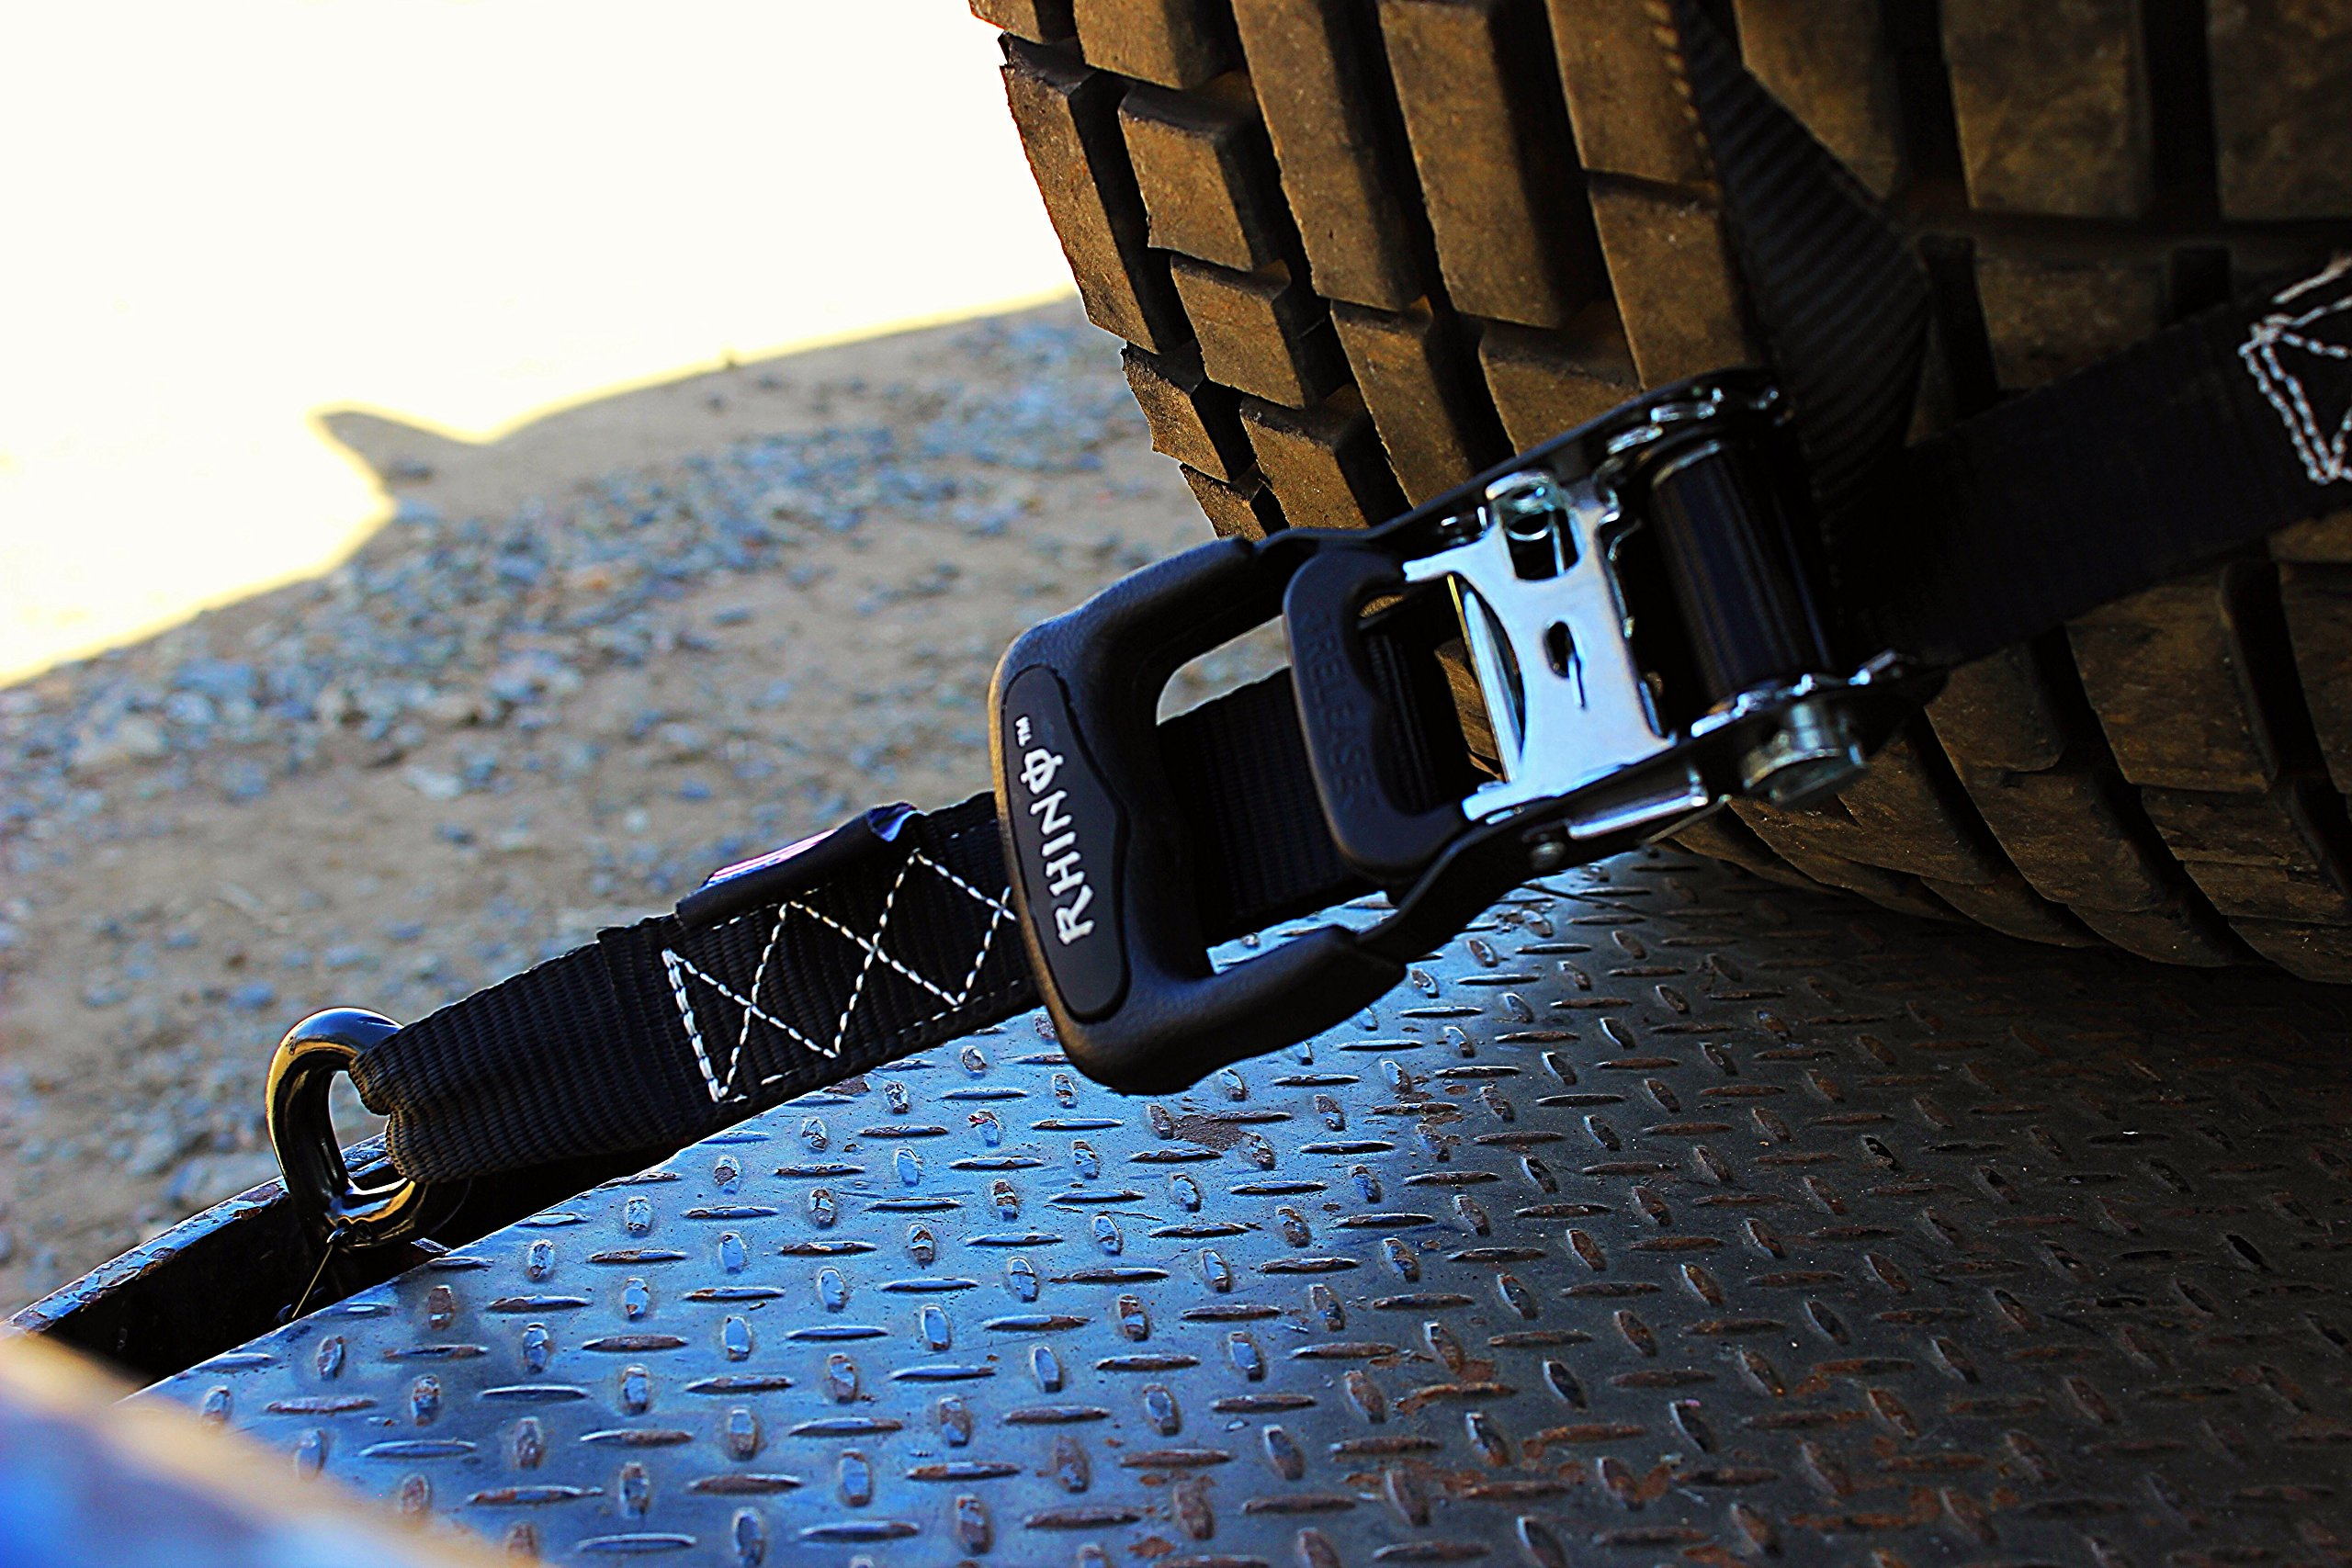 RHINO USA Ratchet Straps Motorcycle Tie Down Kit, 5,208 Break Strength - Includes (2) Heavy Duty 1.6'' x 8' Rachet Tiedowns with Padded Handles & Coated Chromoly S Hooks + (2) Soft Loop Tie-Downs… by Rhino USA (Image #3)